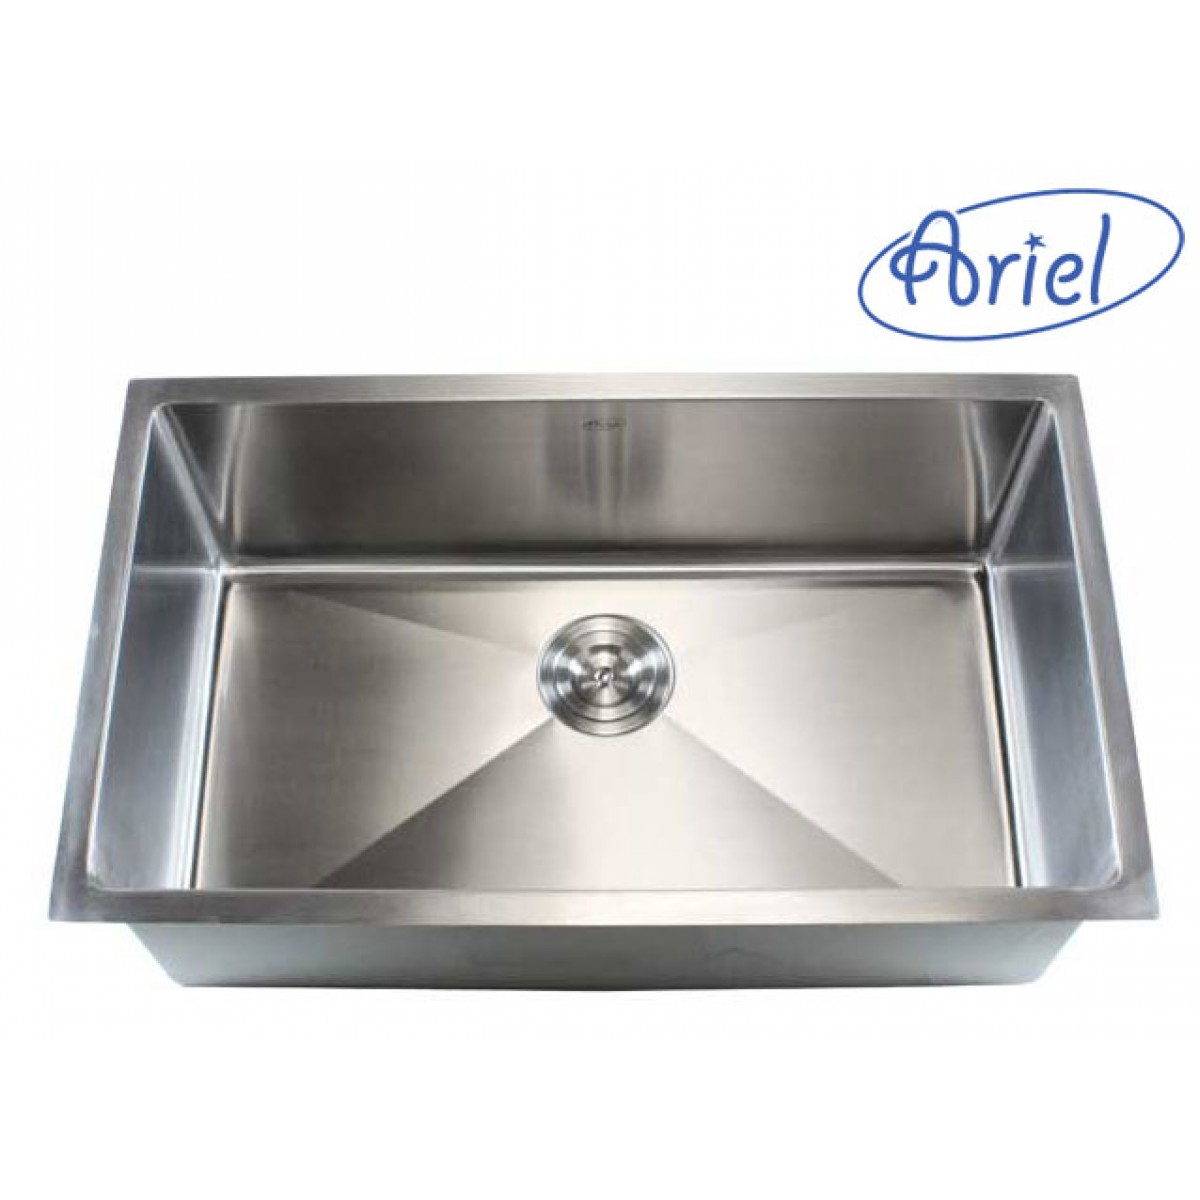 Ariel 30 Inch Stainless Steel Undermount Single Bowl Kitchen Sink ...